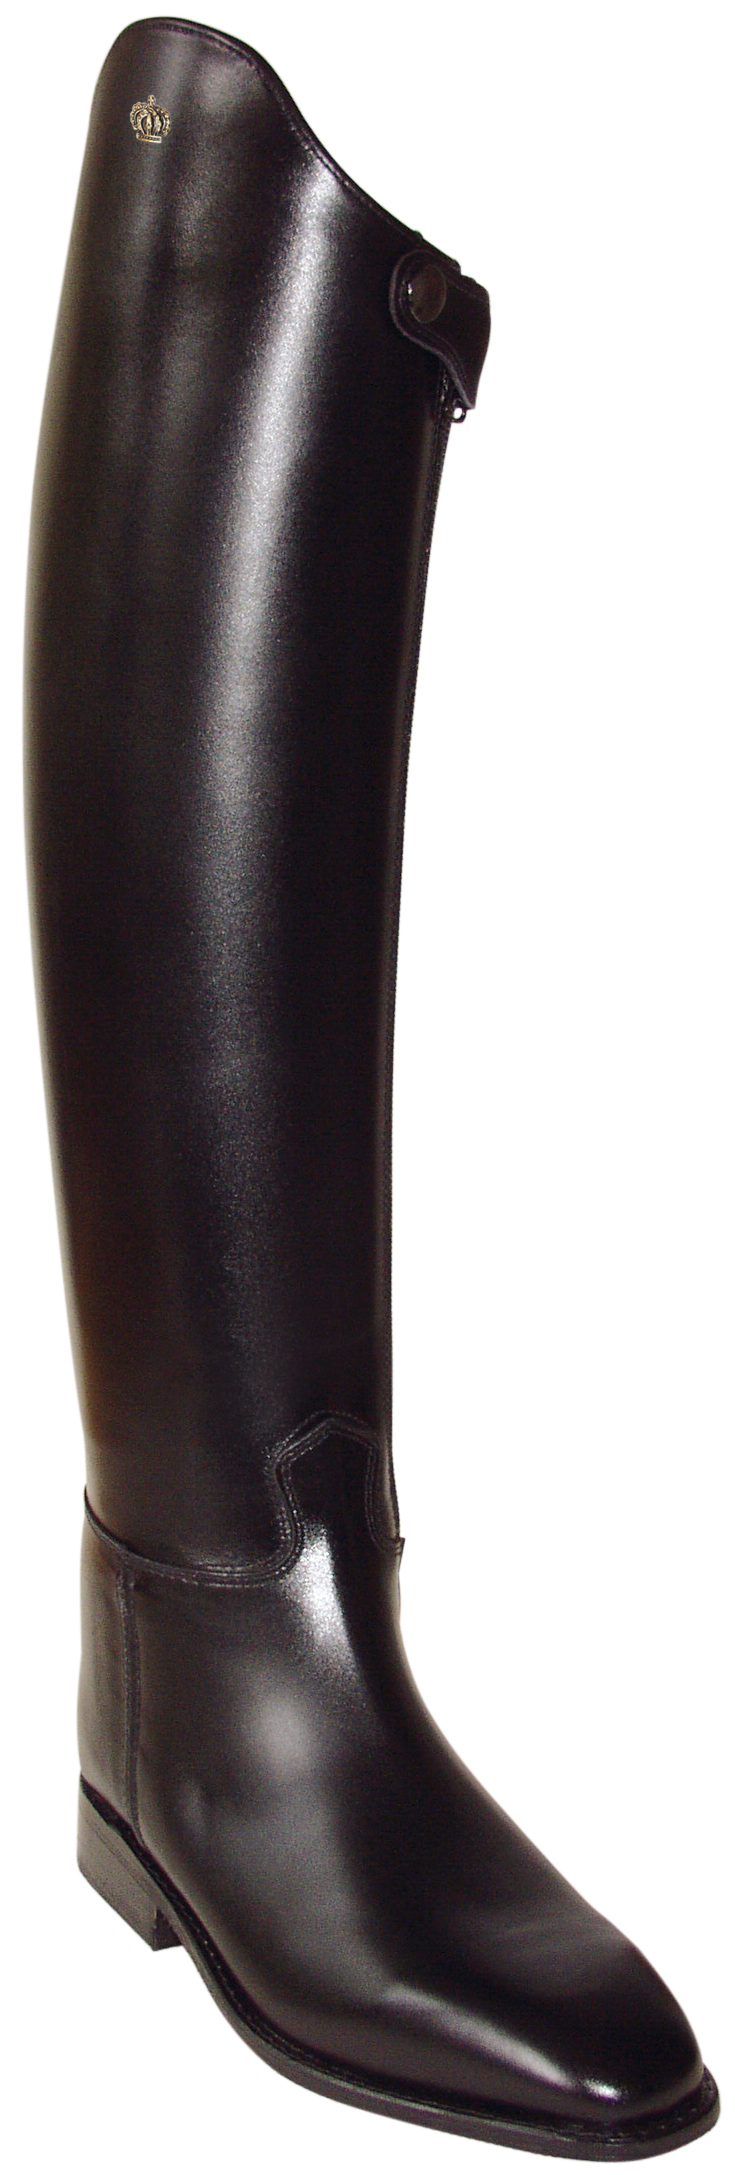 Mens Riding Boots 17